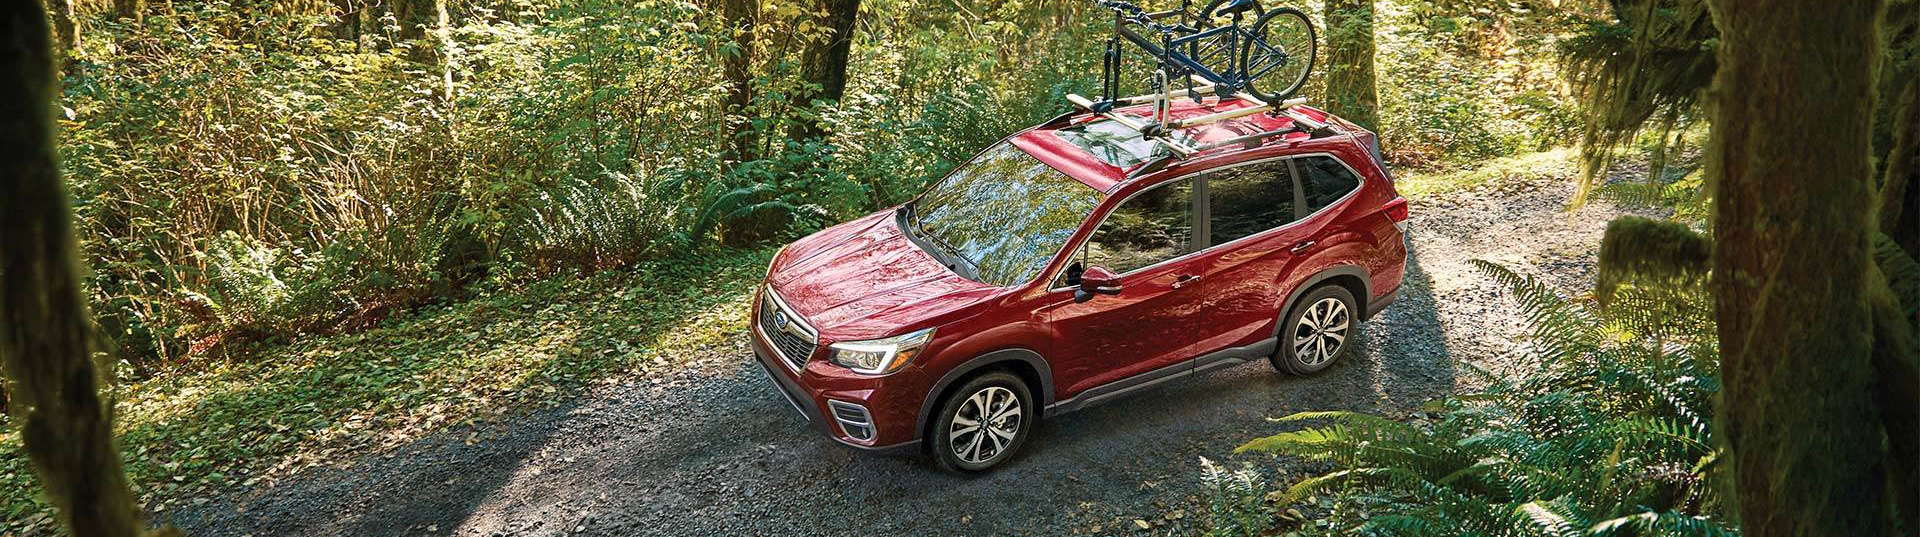 red 2020 subaru forester driving through the woods